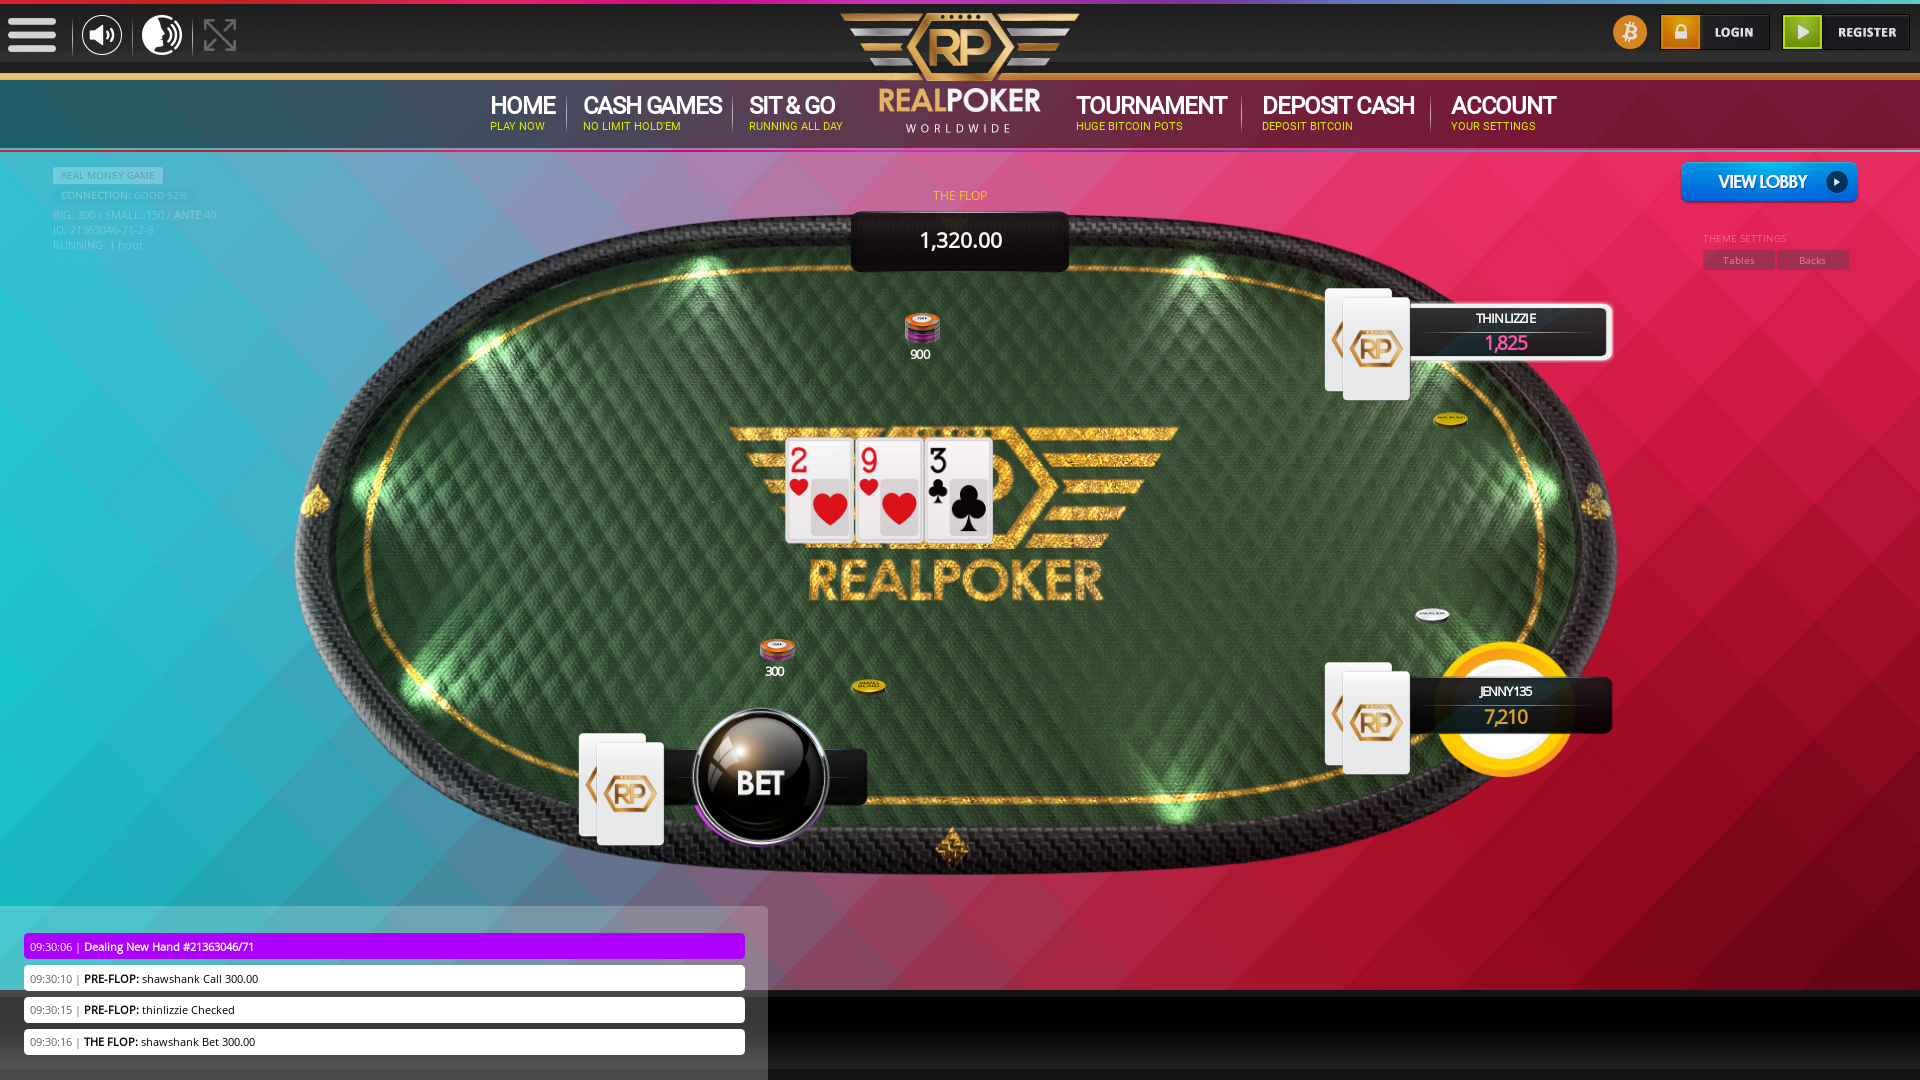 Online poker on a 10 player table in the 59th minute match up